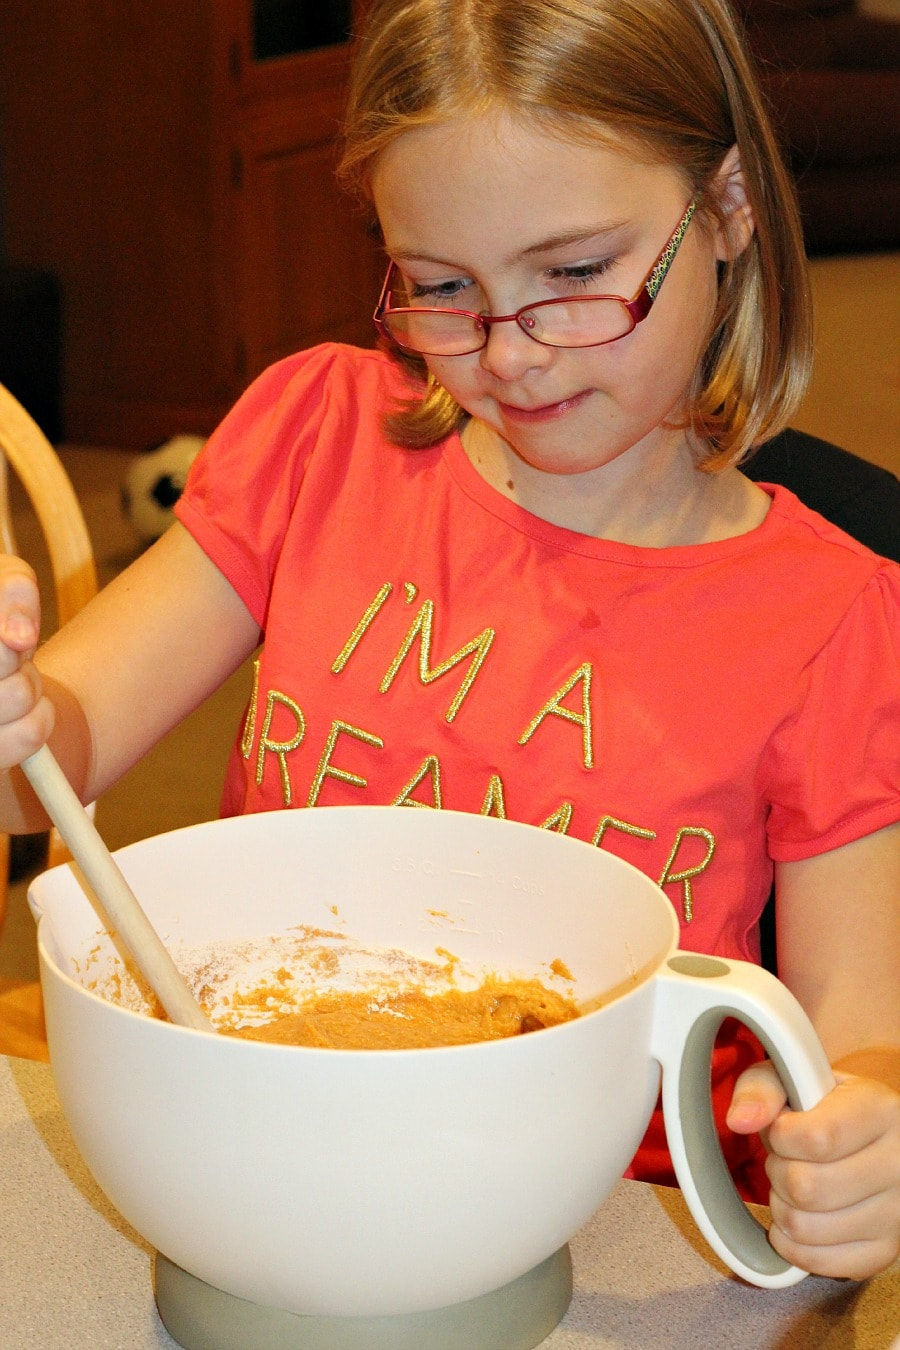 Kids Helping Make Pumpkin Spice Bread